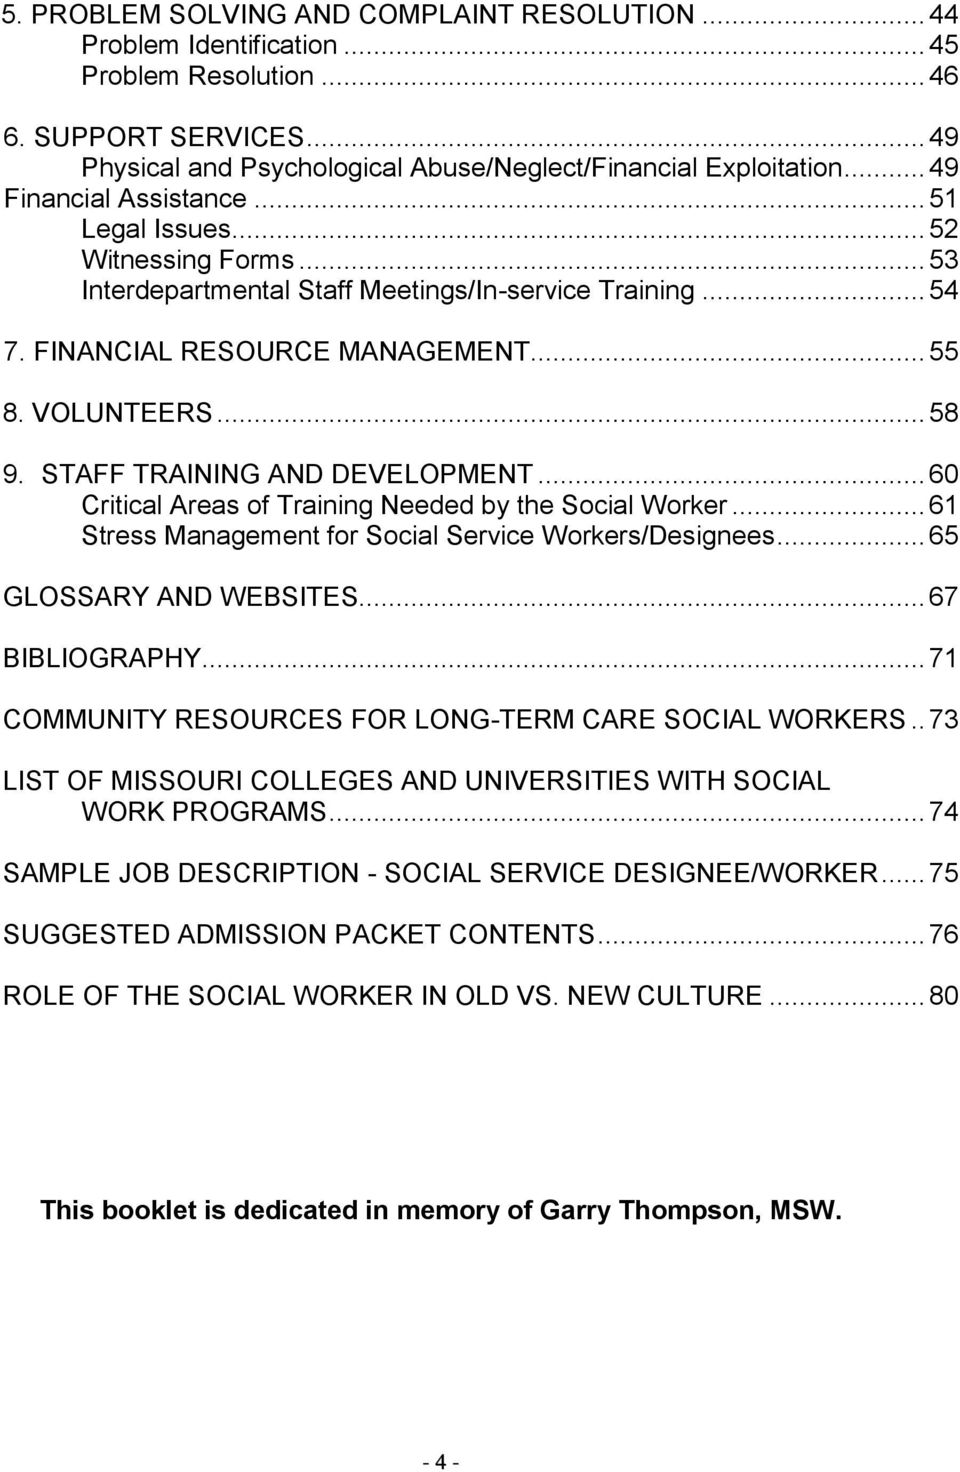 STAFF TRAINING AND DEVELOPMENT... 60 Critical Areas of Training Needed by the Social Worker... 61 Stress Management for Social Service Workers/Designees... 65 GLOSSARY AND WEBSITES... 67 BIBLIOGRAPHY.